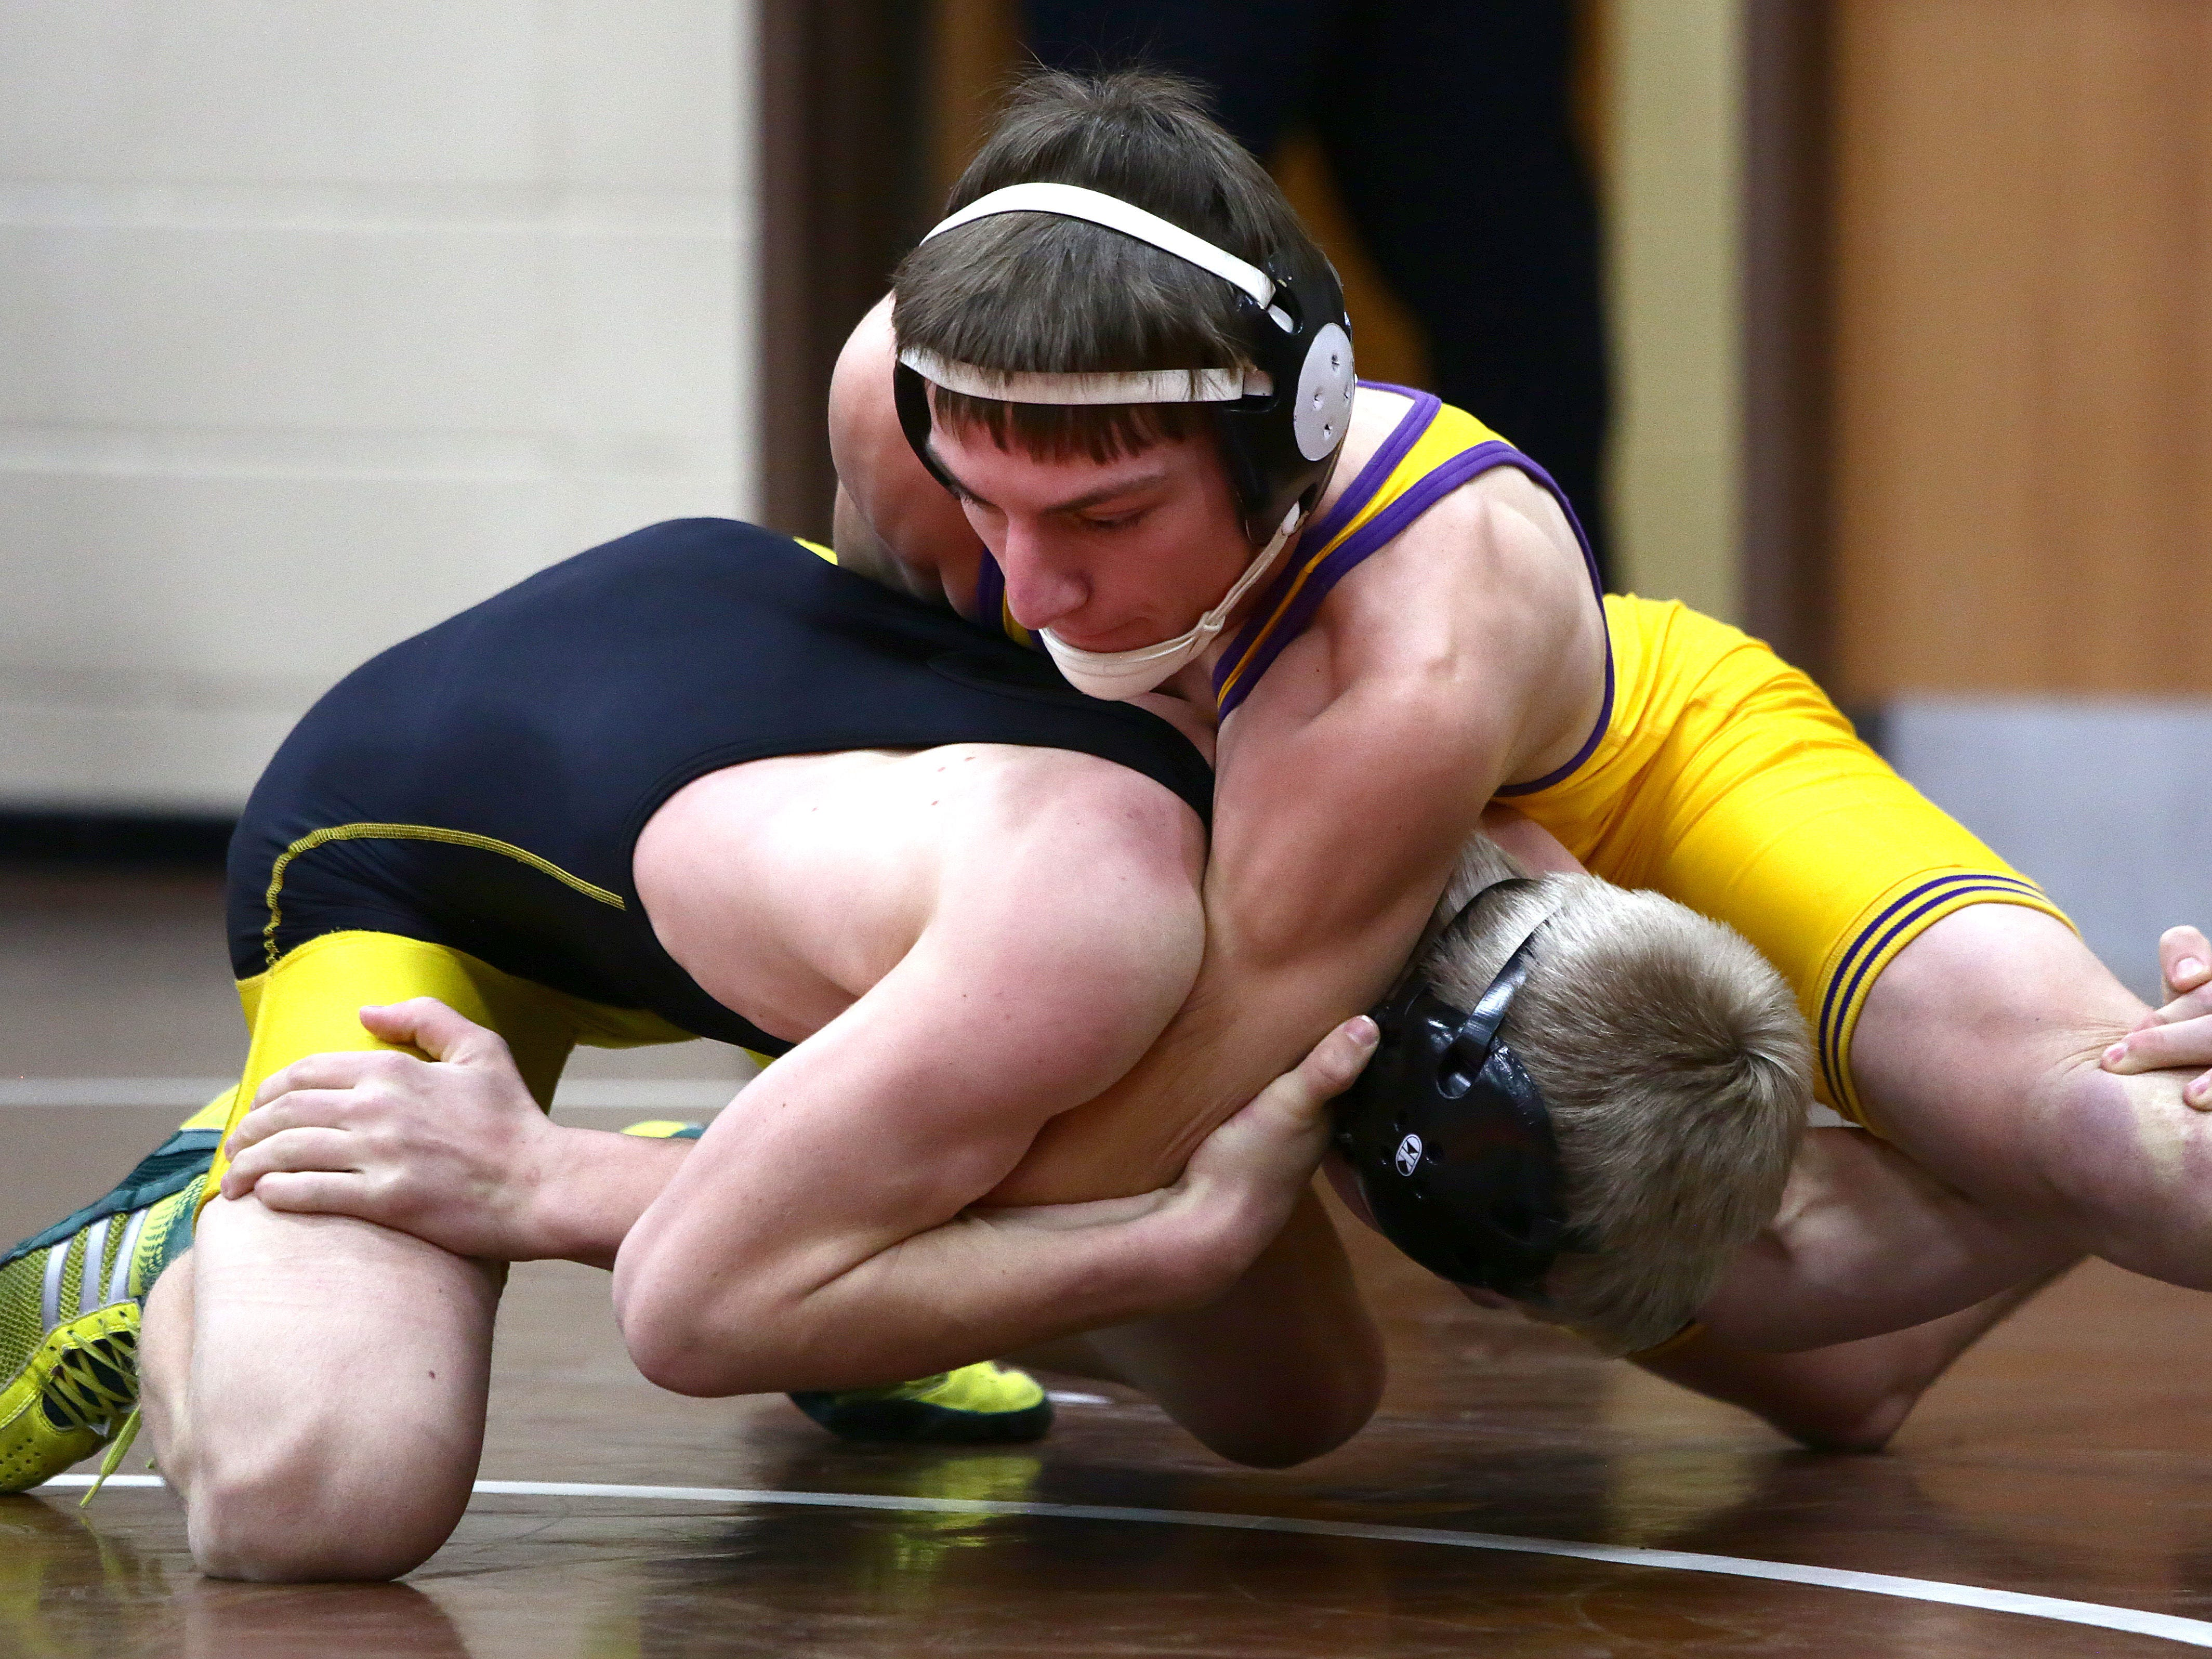 Lexington's Max Baker tops Northmor's previously unbeaten Conan Becker 11-0 in Friday's first round of the J.C. Gorman Invitational.